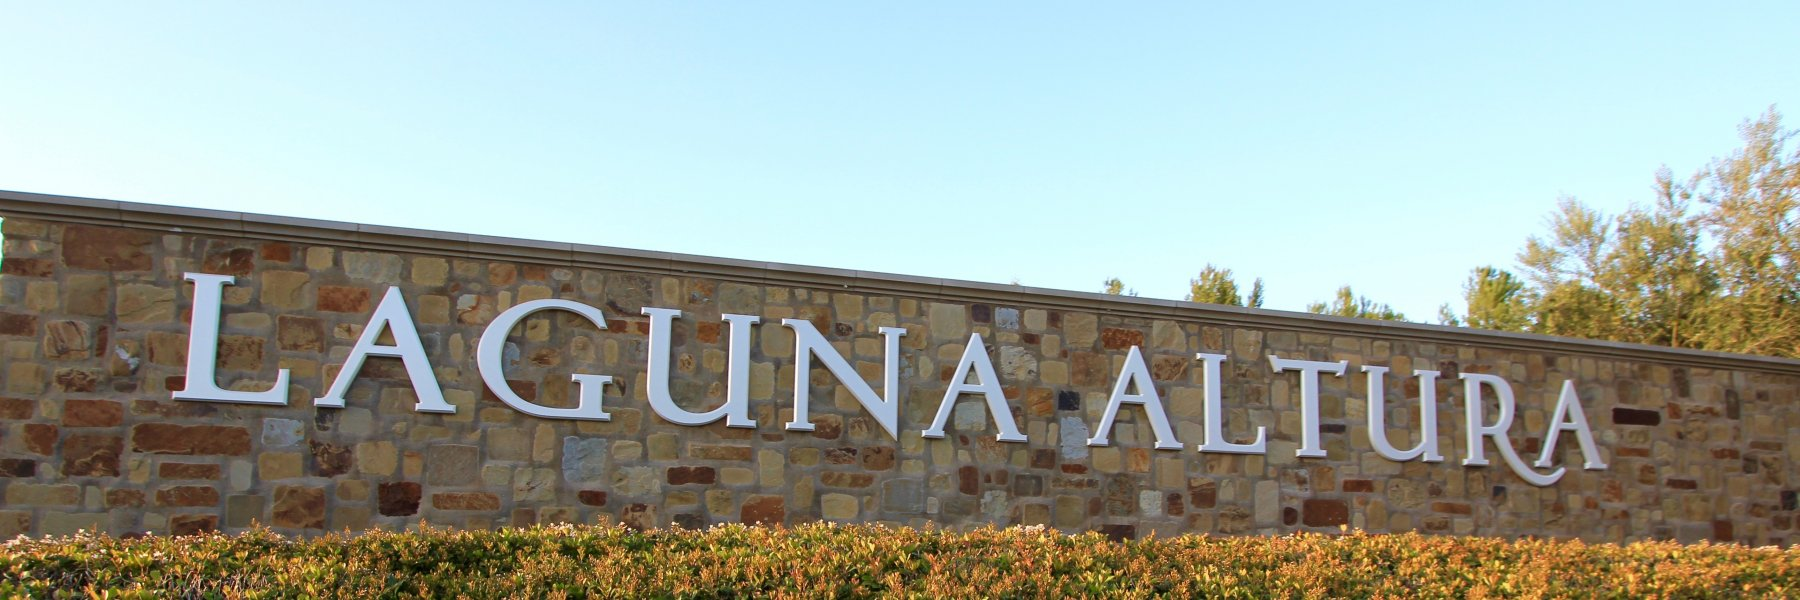 Laguna Altura is a community of homes in Irvine California